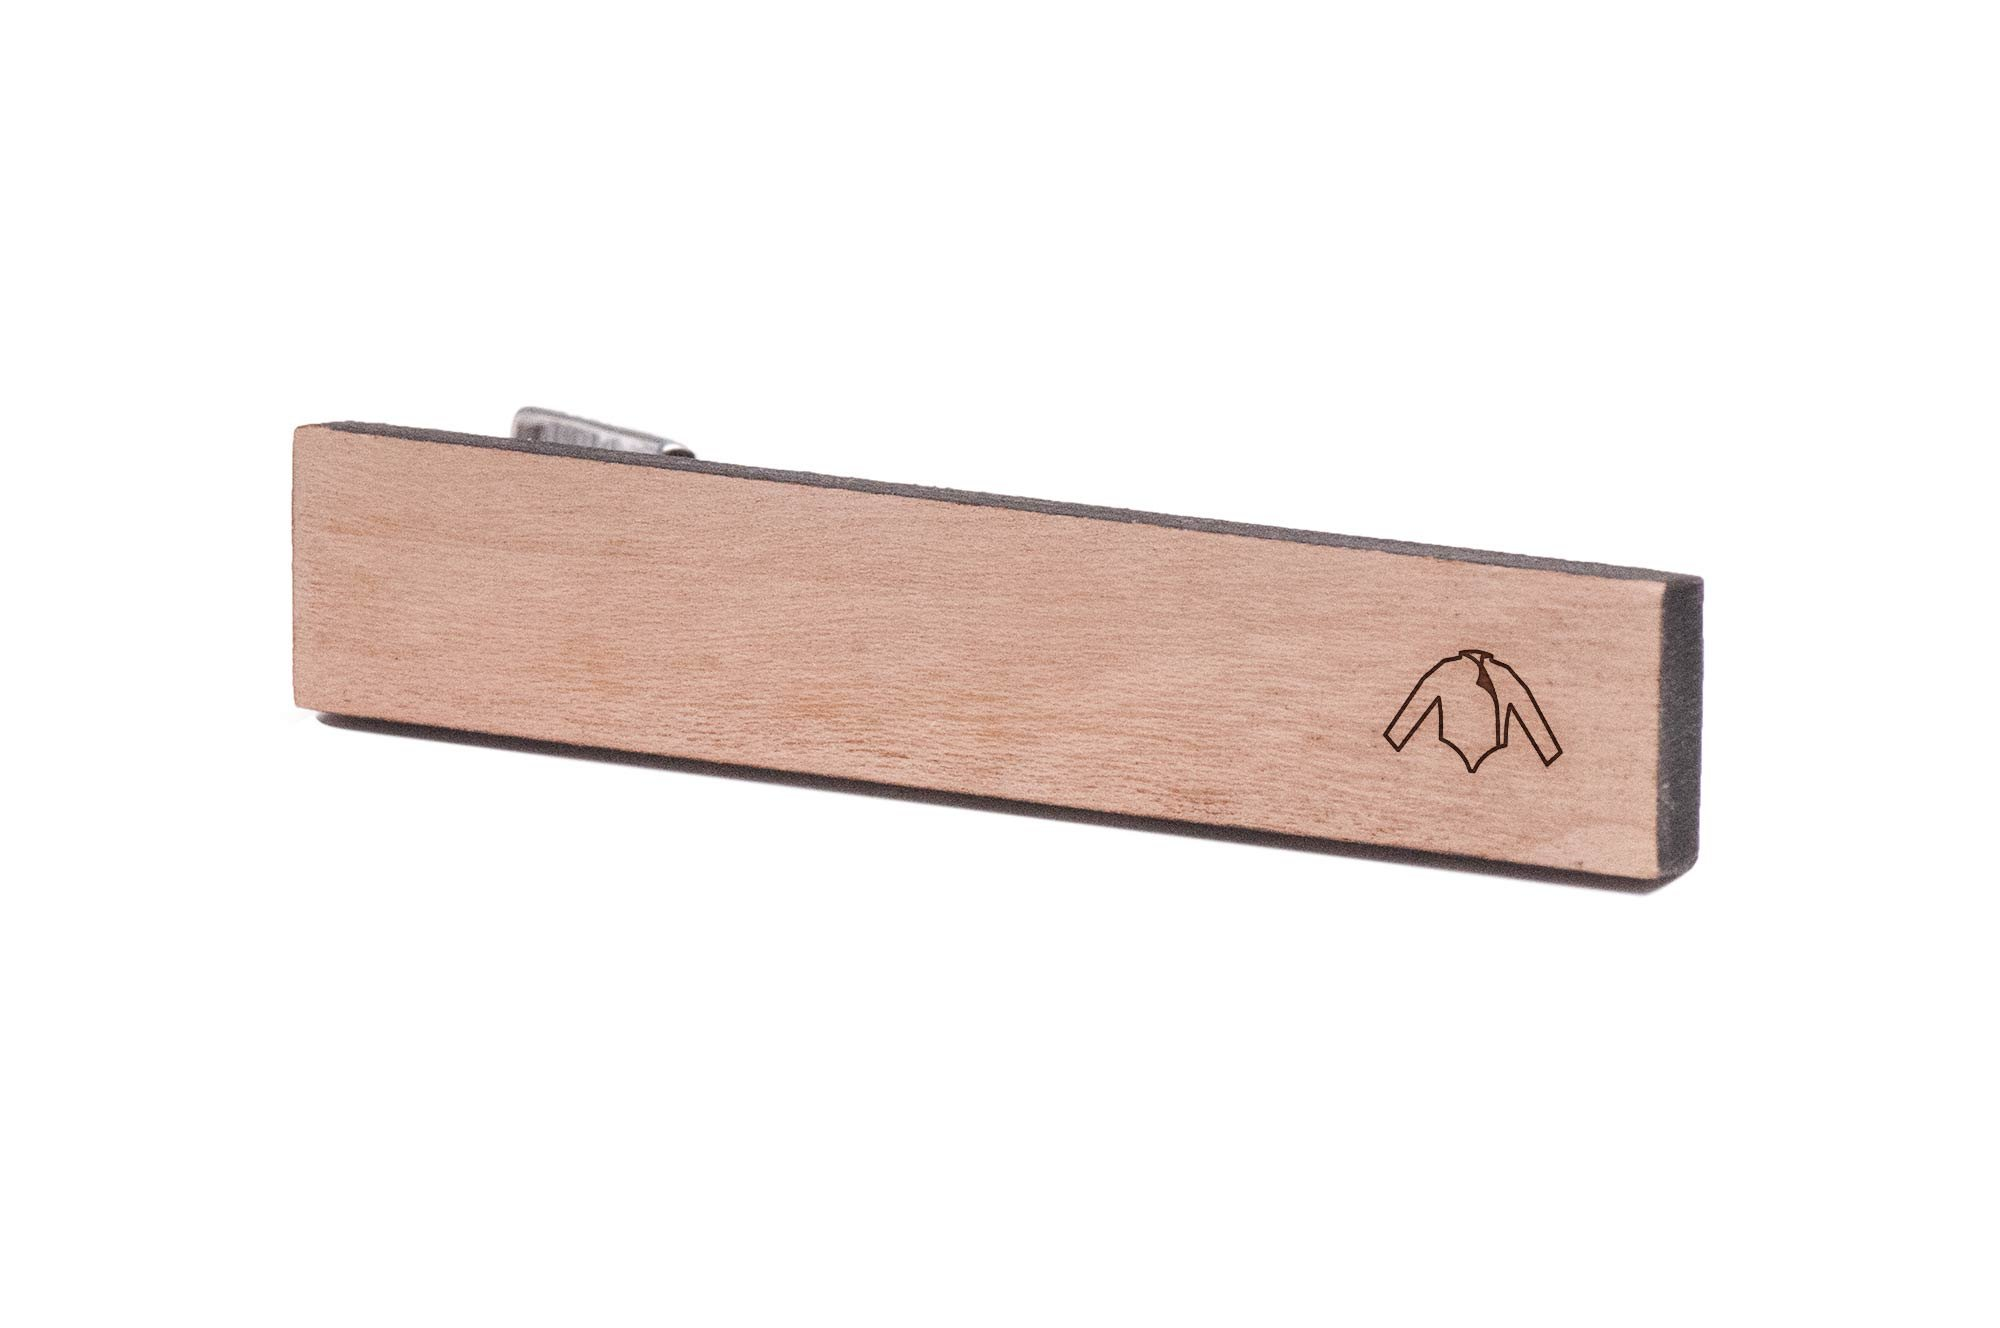 WOODEN ACCESSORIES COMPANY Wooden Tie Clips With Laser Engraved Fencing Jacket Design - Cherry Wood Tie Bar Engraved In The USA